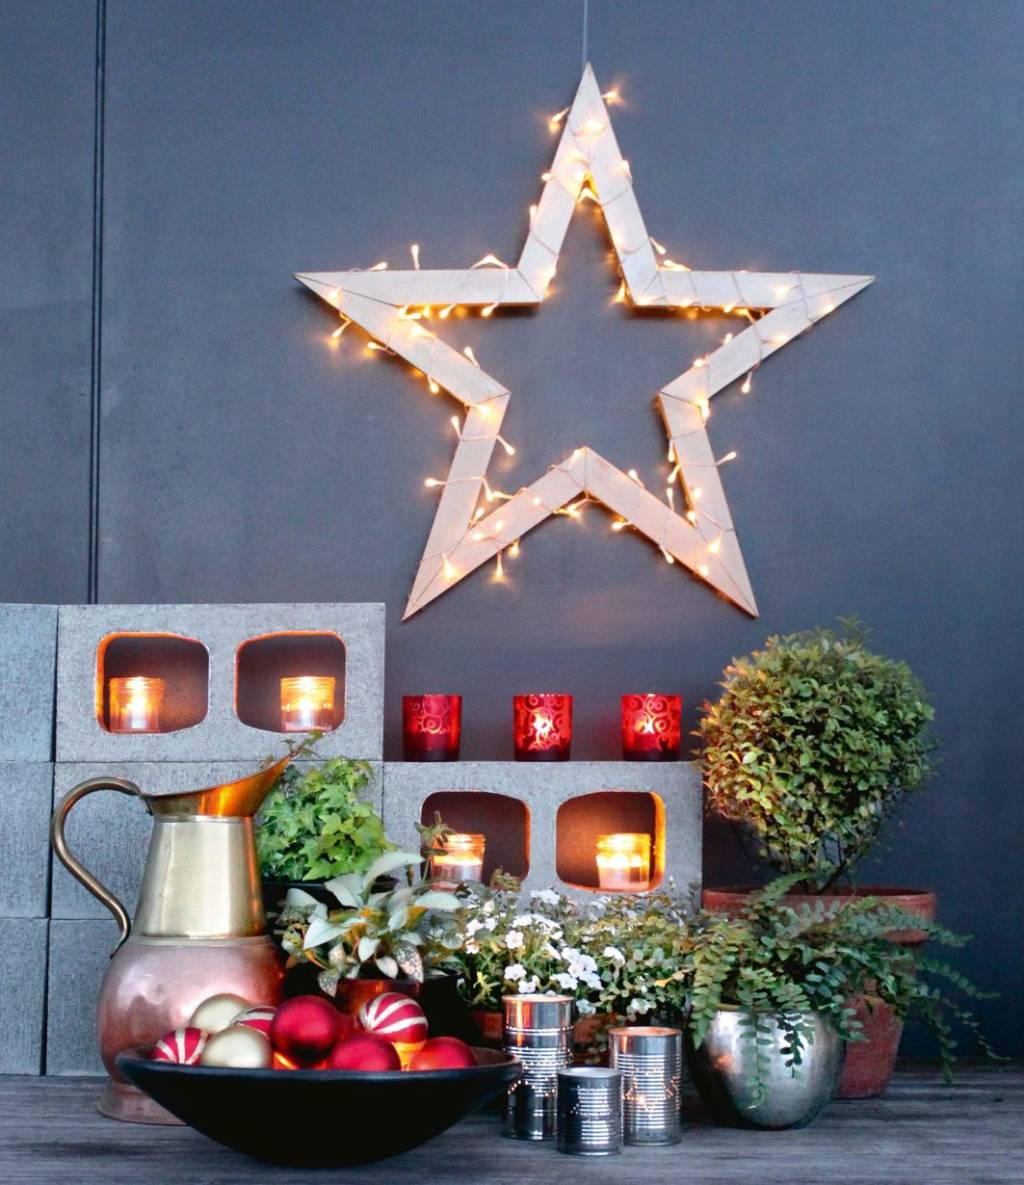 DIY: Wooden Christmas Star Decorated With Fairy Lights